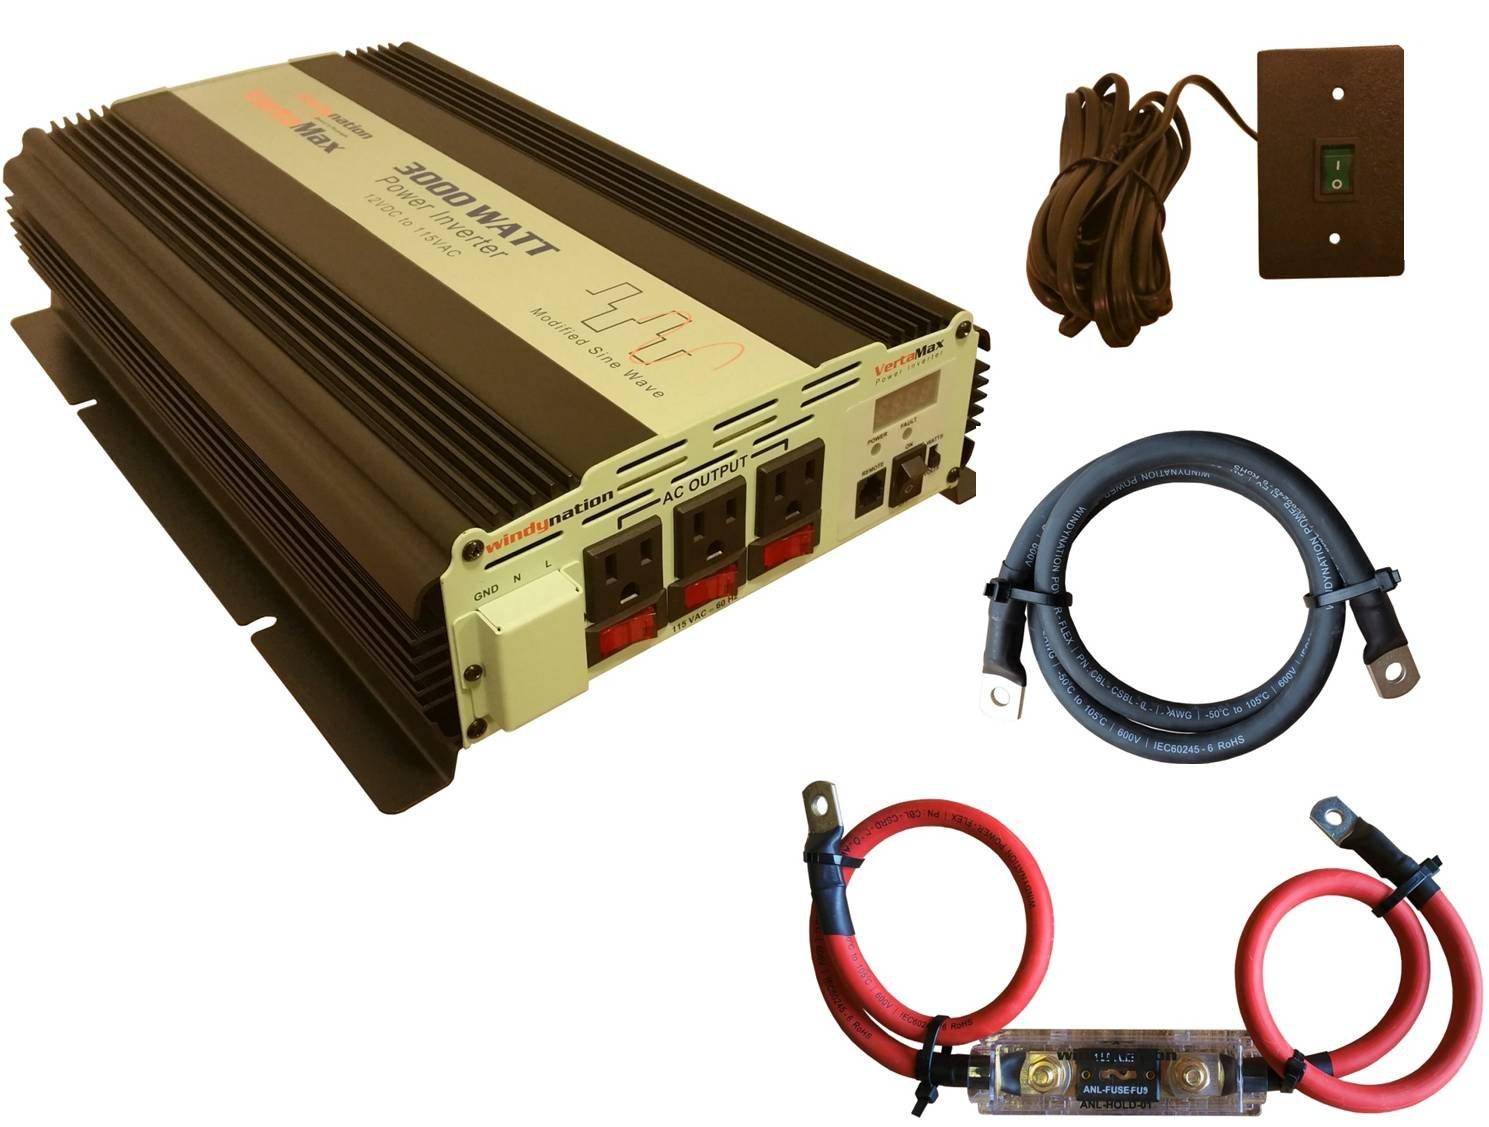 12V Power Inverter DC to AC Car VertaMax Modified 3000 Watt Solar WindyNation RV 6000W Surge Cables + Remote Control Switch + ANL Fuse Included Back Up Power